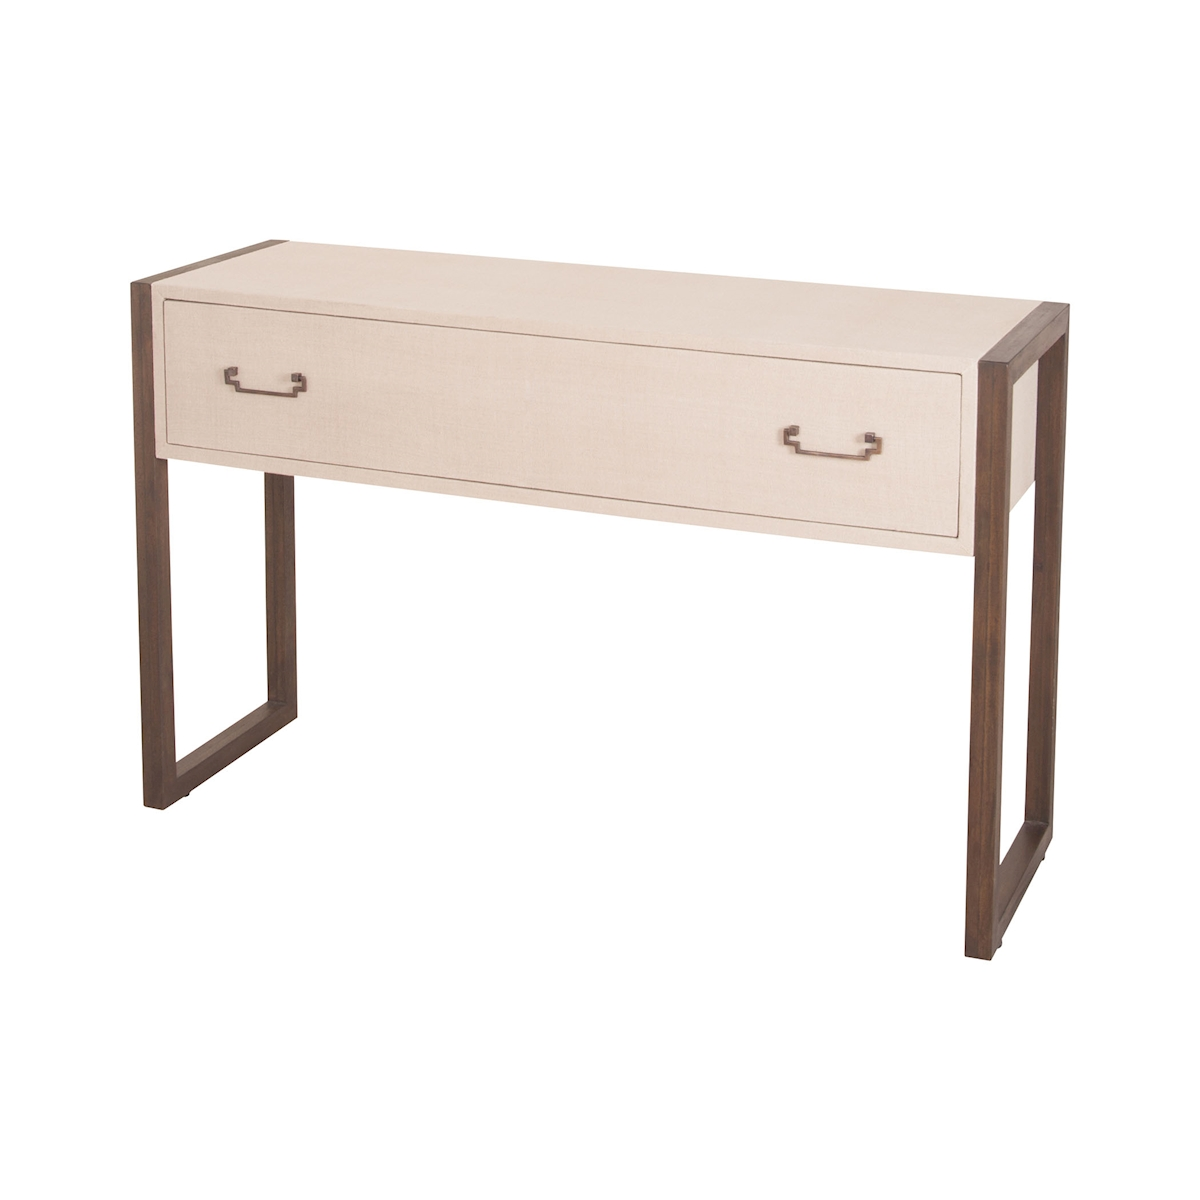 Sand Dollar Sofa Table 7116543 | ELK Home